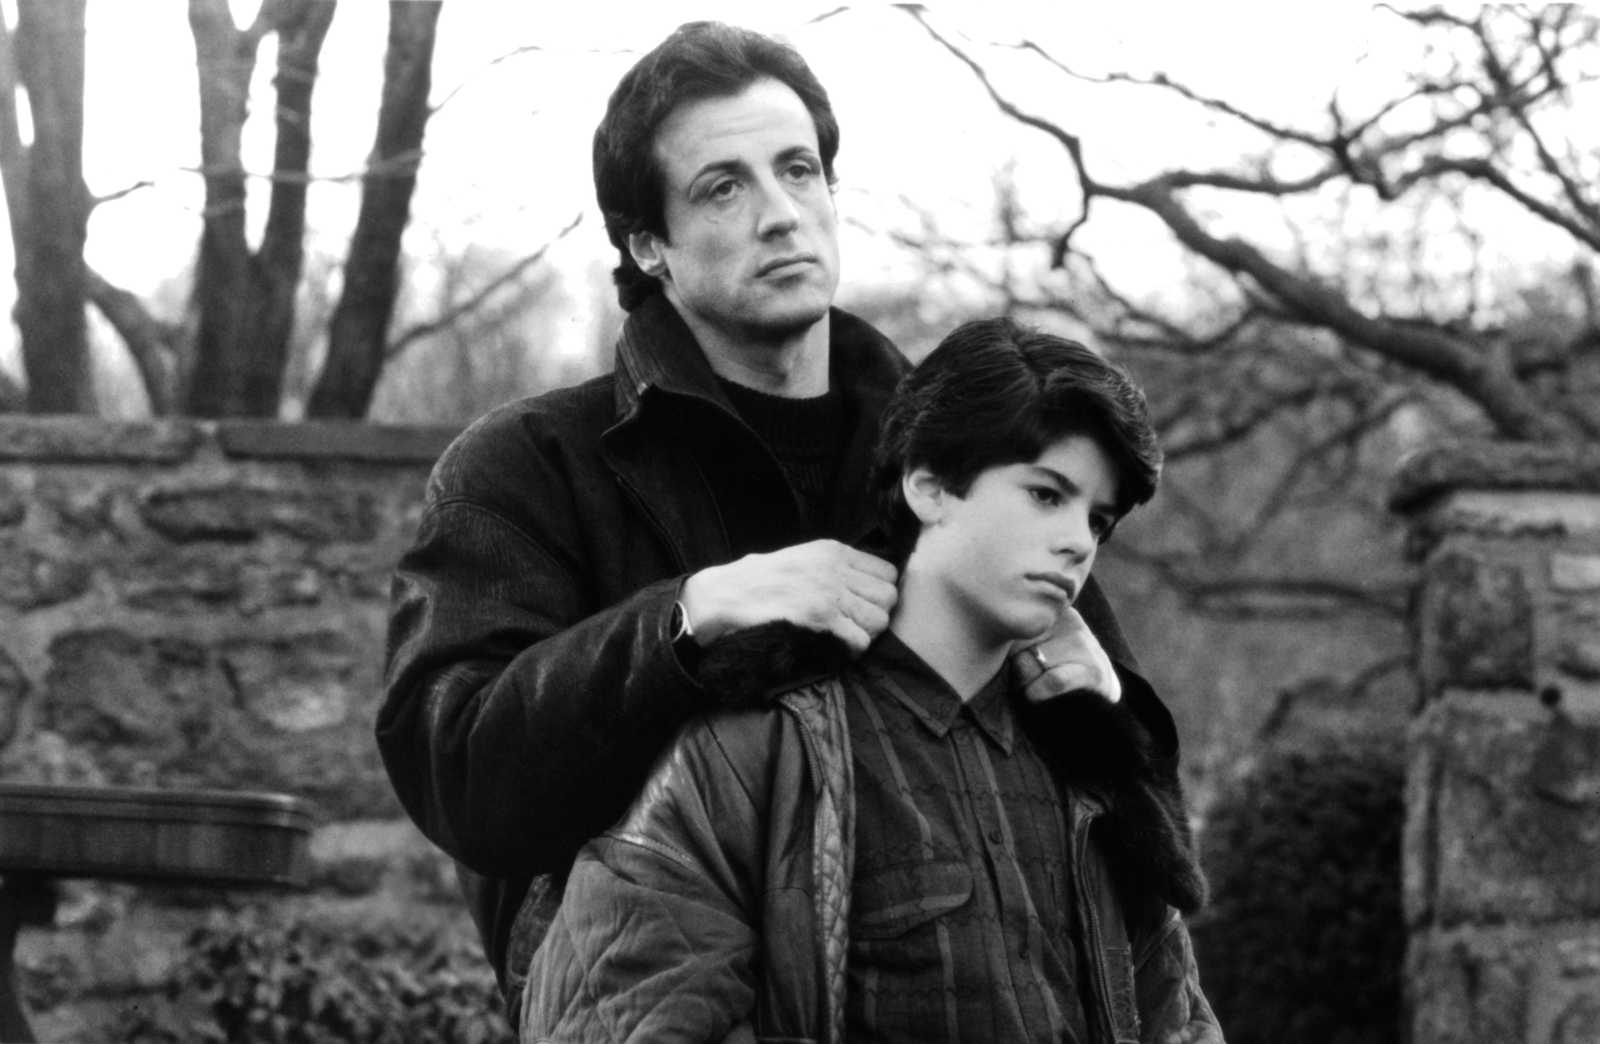 Sylvester Stallone and his son actor Sage Stallone